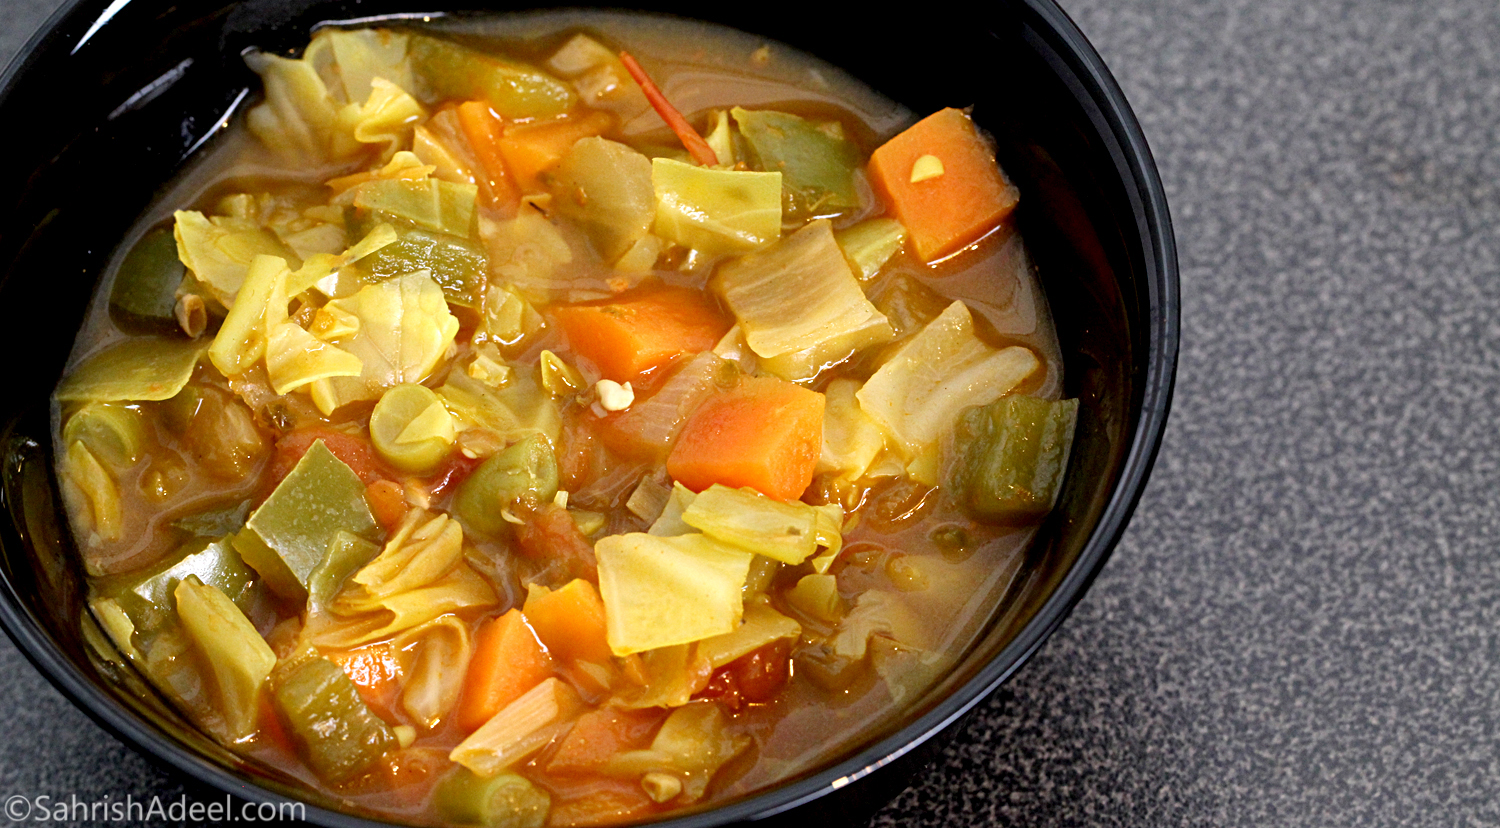 Cabbage Soup Diet Plan - For Busy Lifestyle!